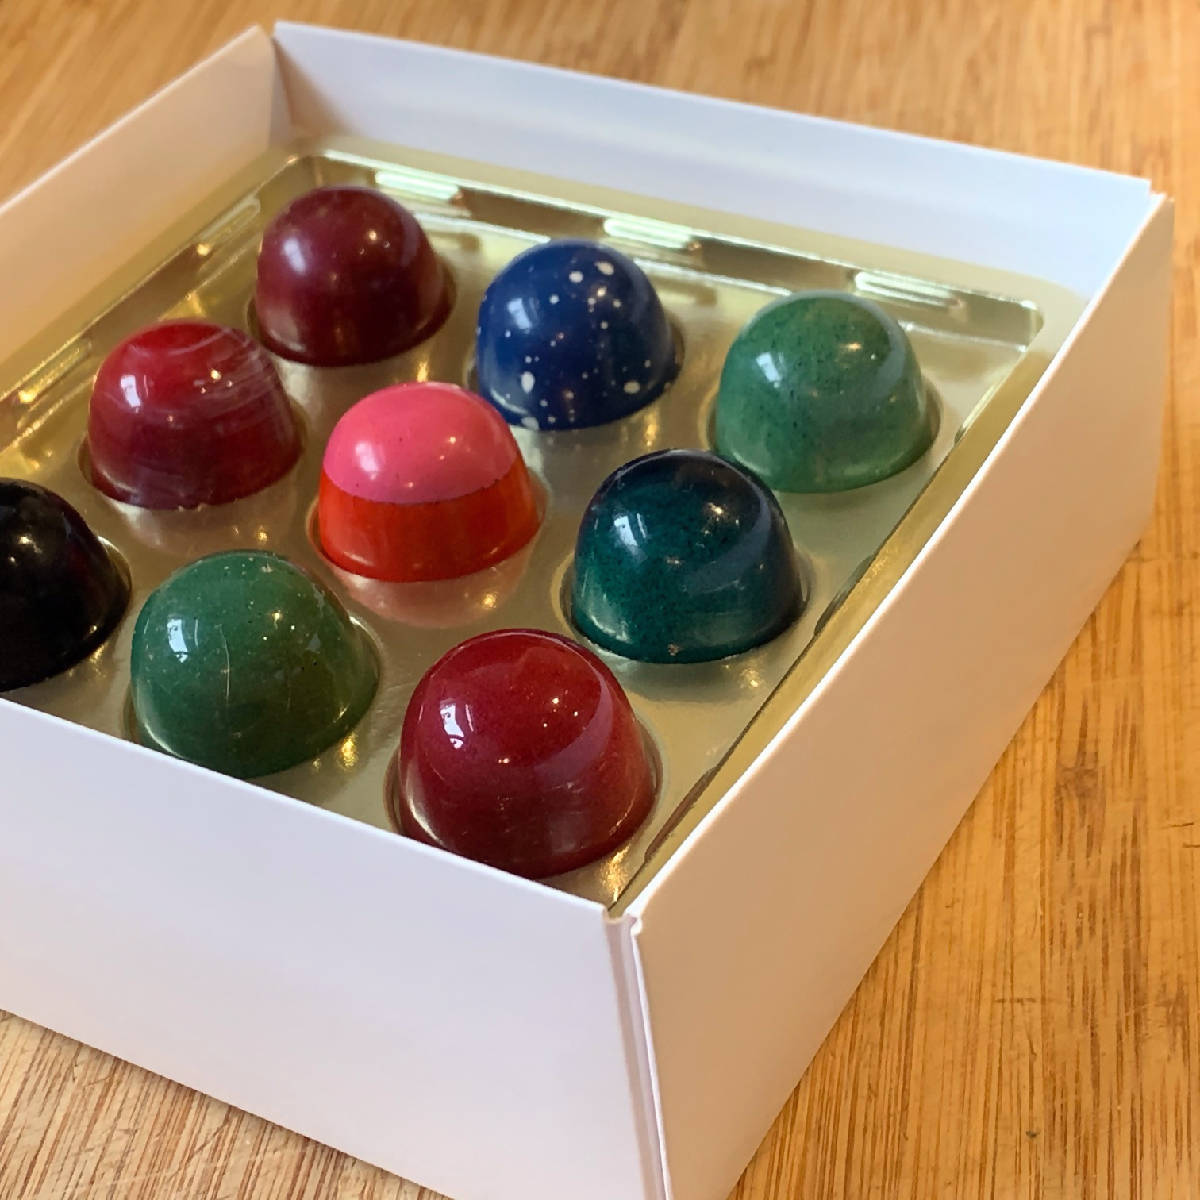 Signature hand-painted bonbons - made cleveland